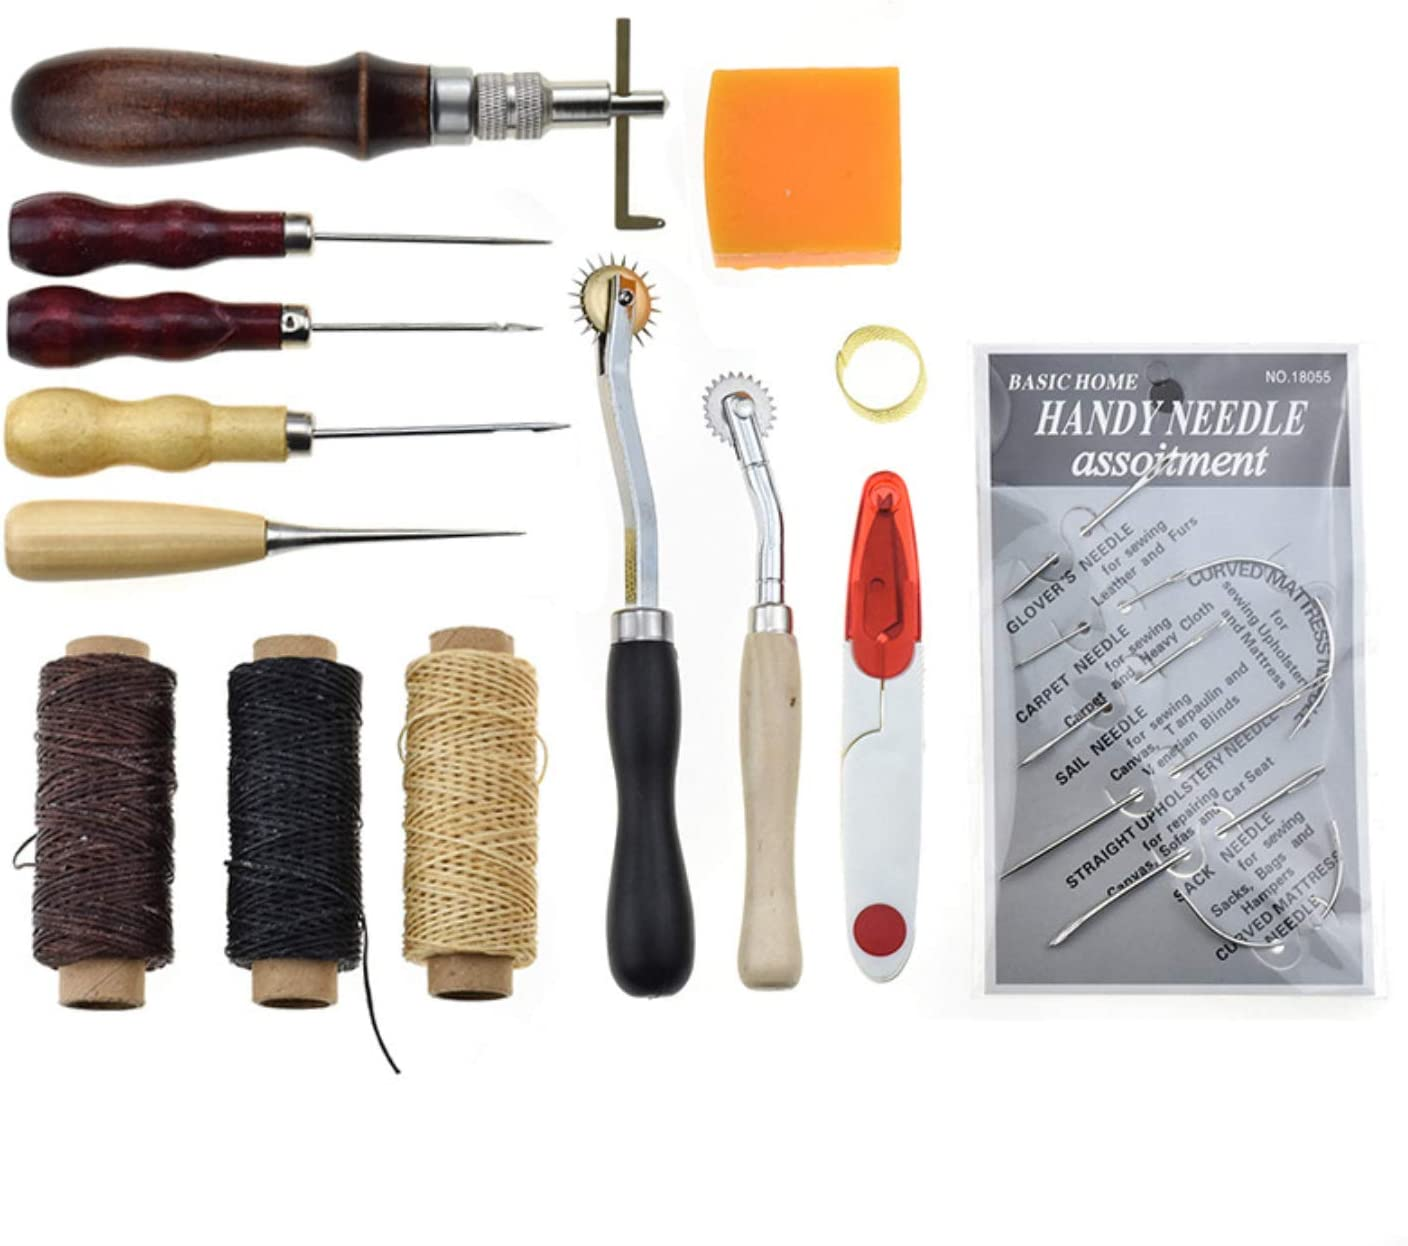 14 Pieces Leather Craft Hand Including Stitching Groover Basic Hand Stitching Sewing Tool Set Saddle Groover Leather Craft DIY Tool